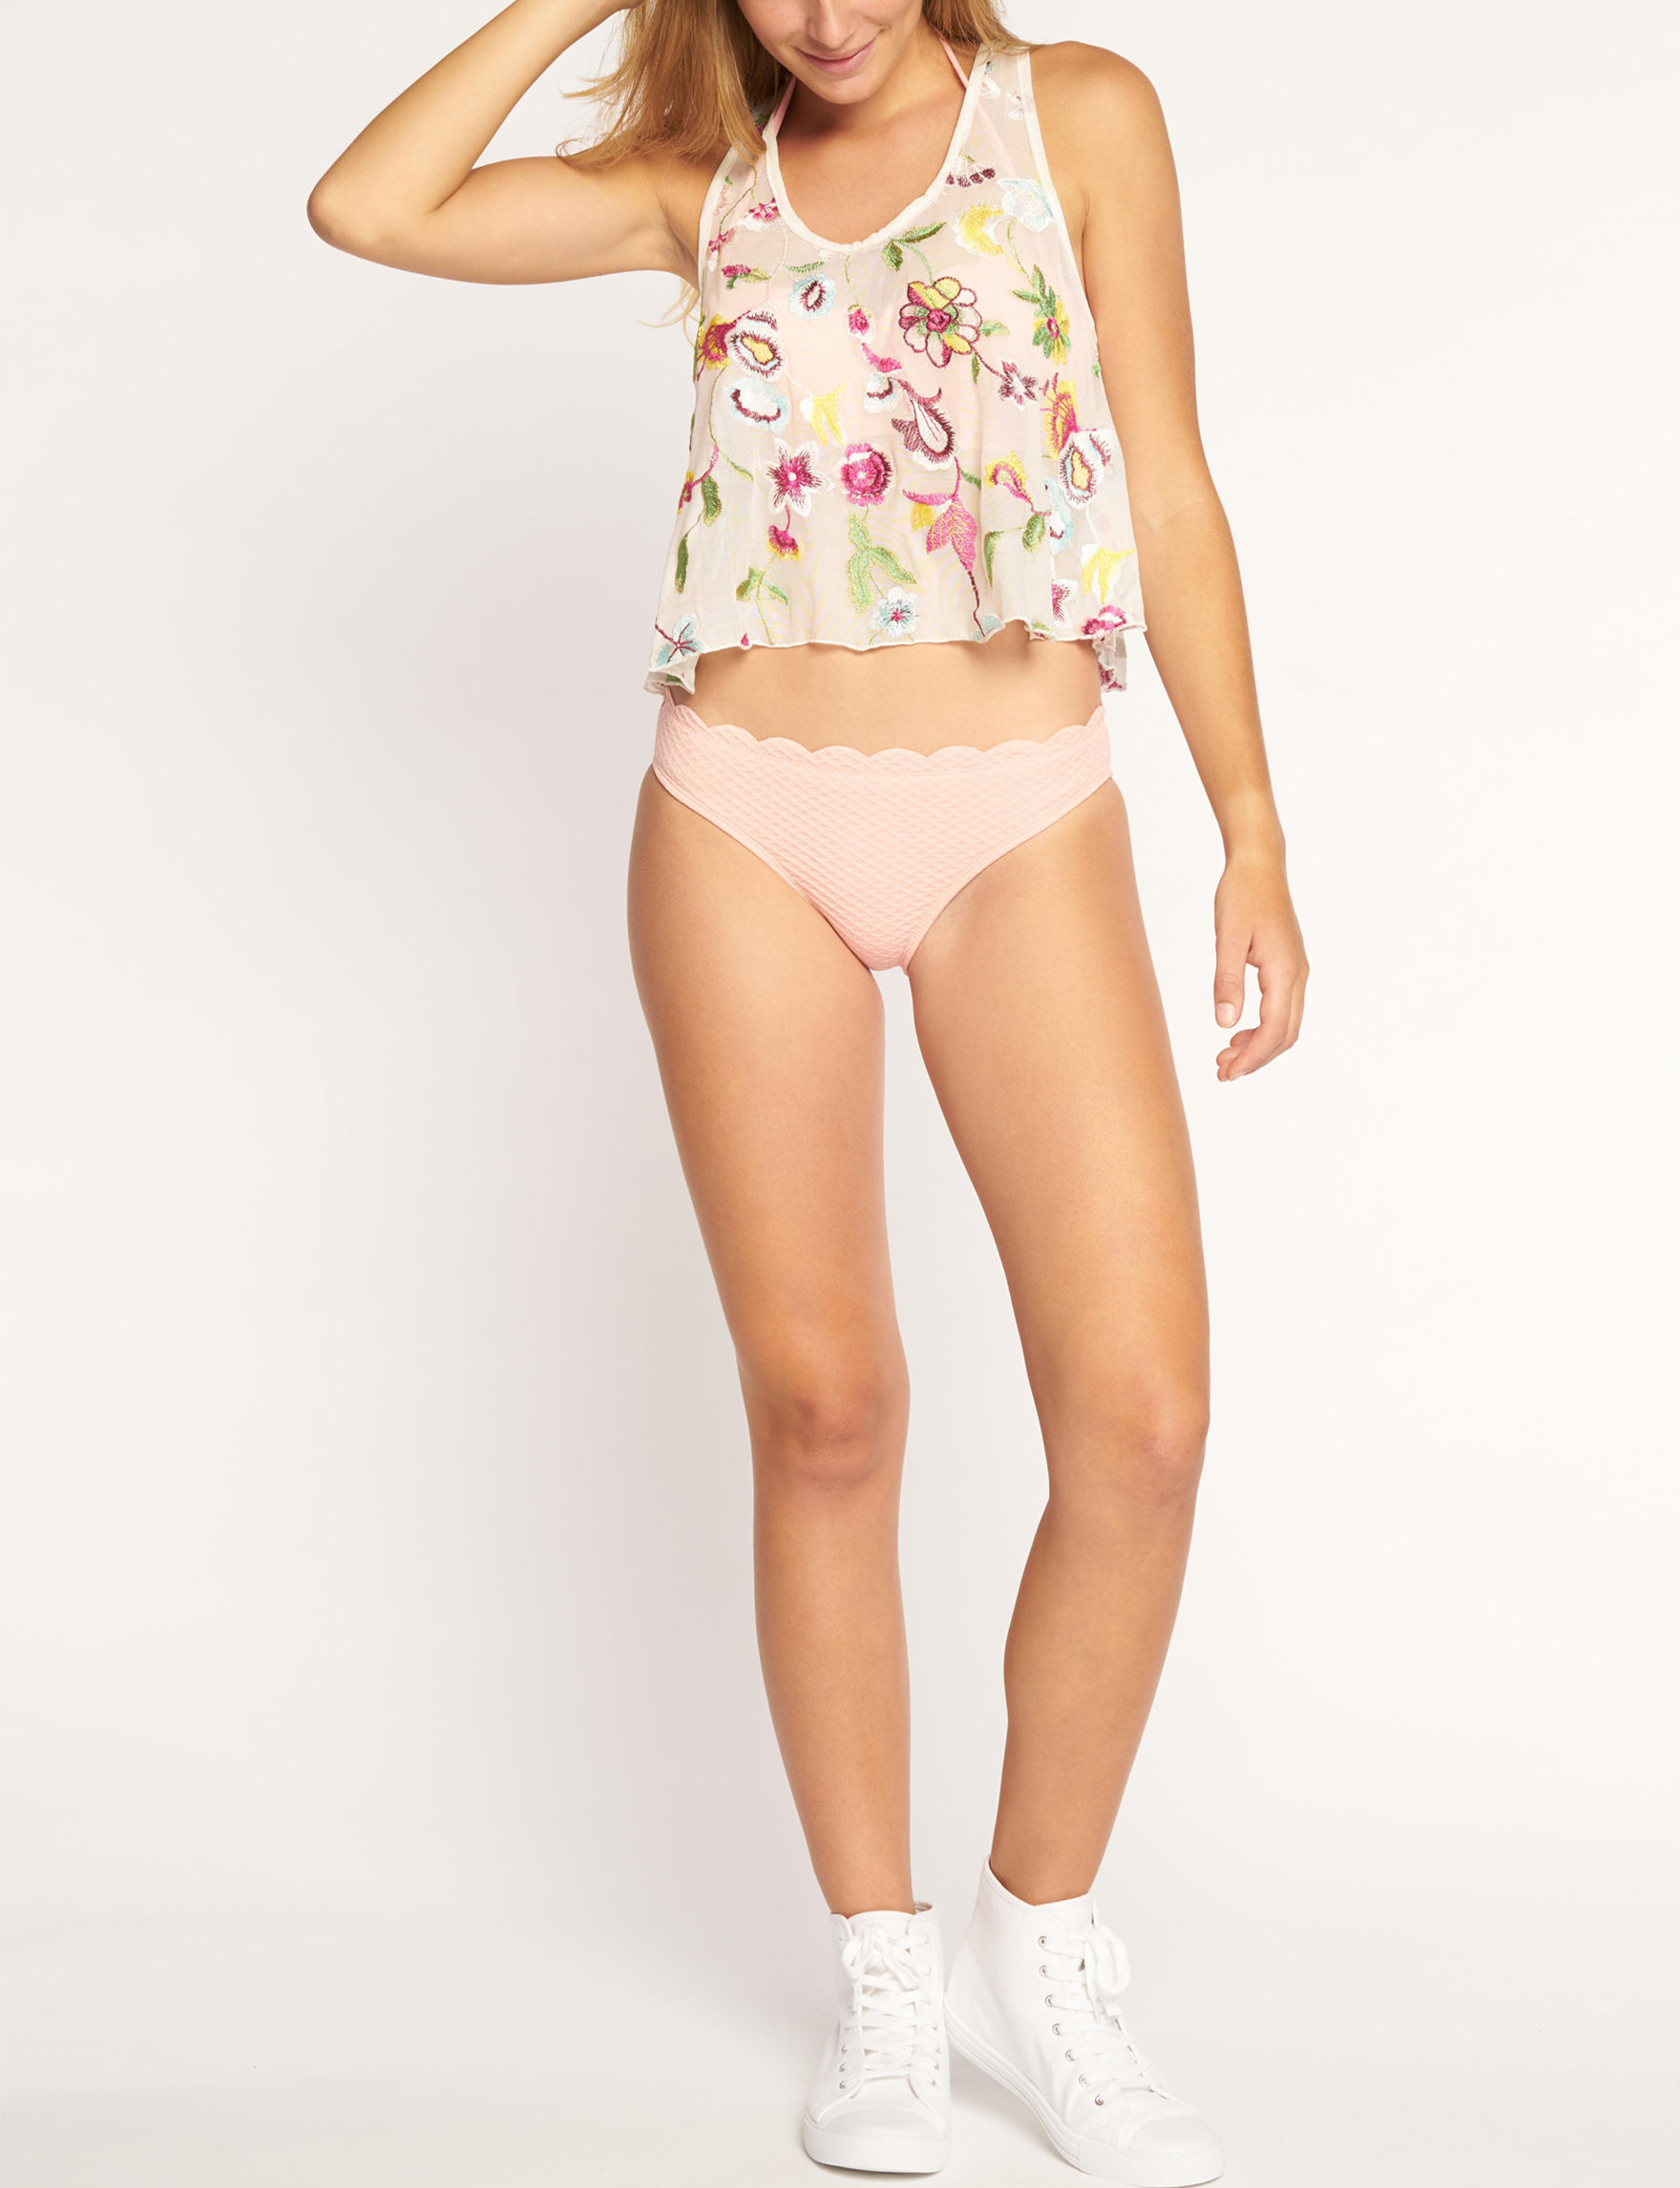 Beach Habitat White Floral Cover-Ups